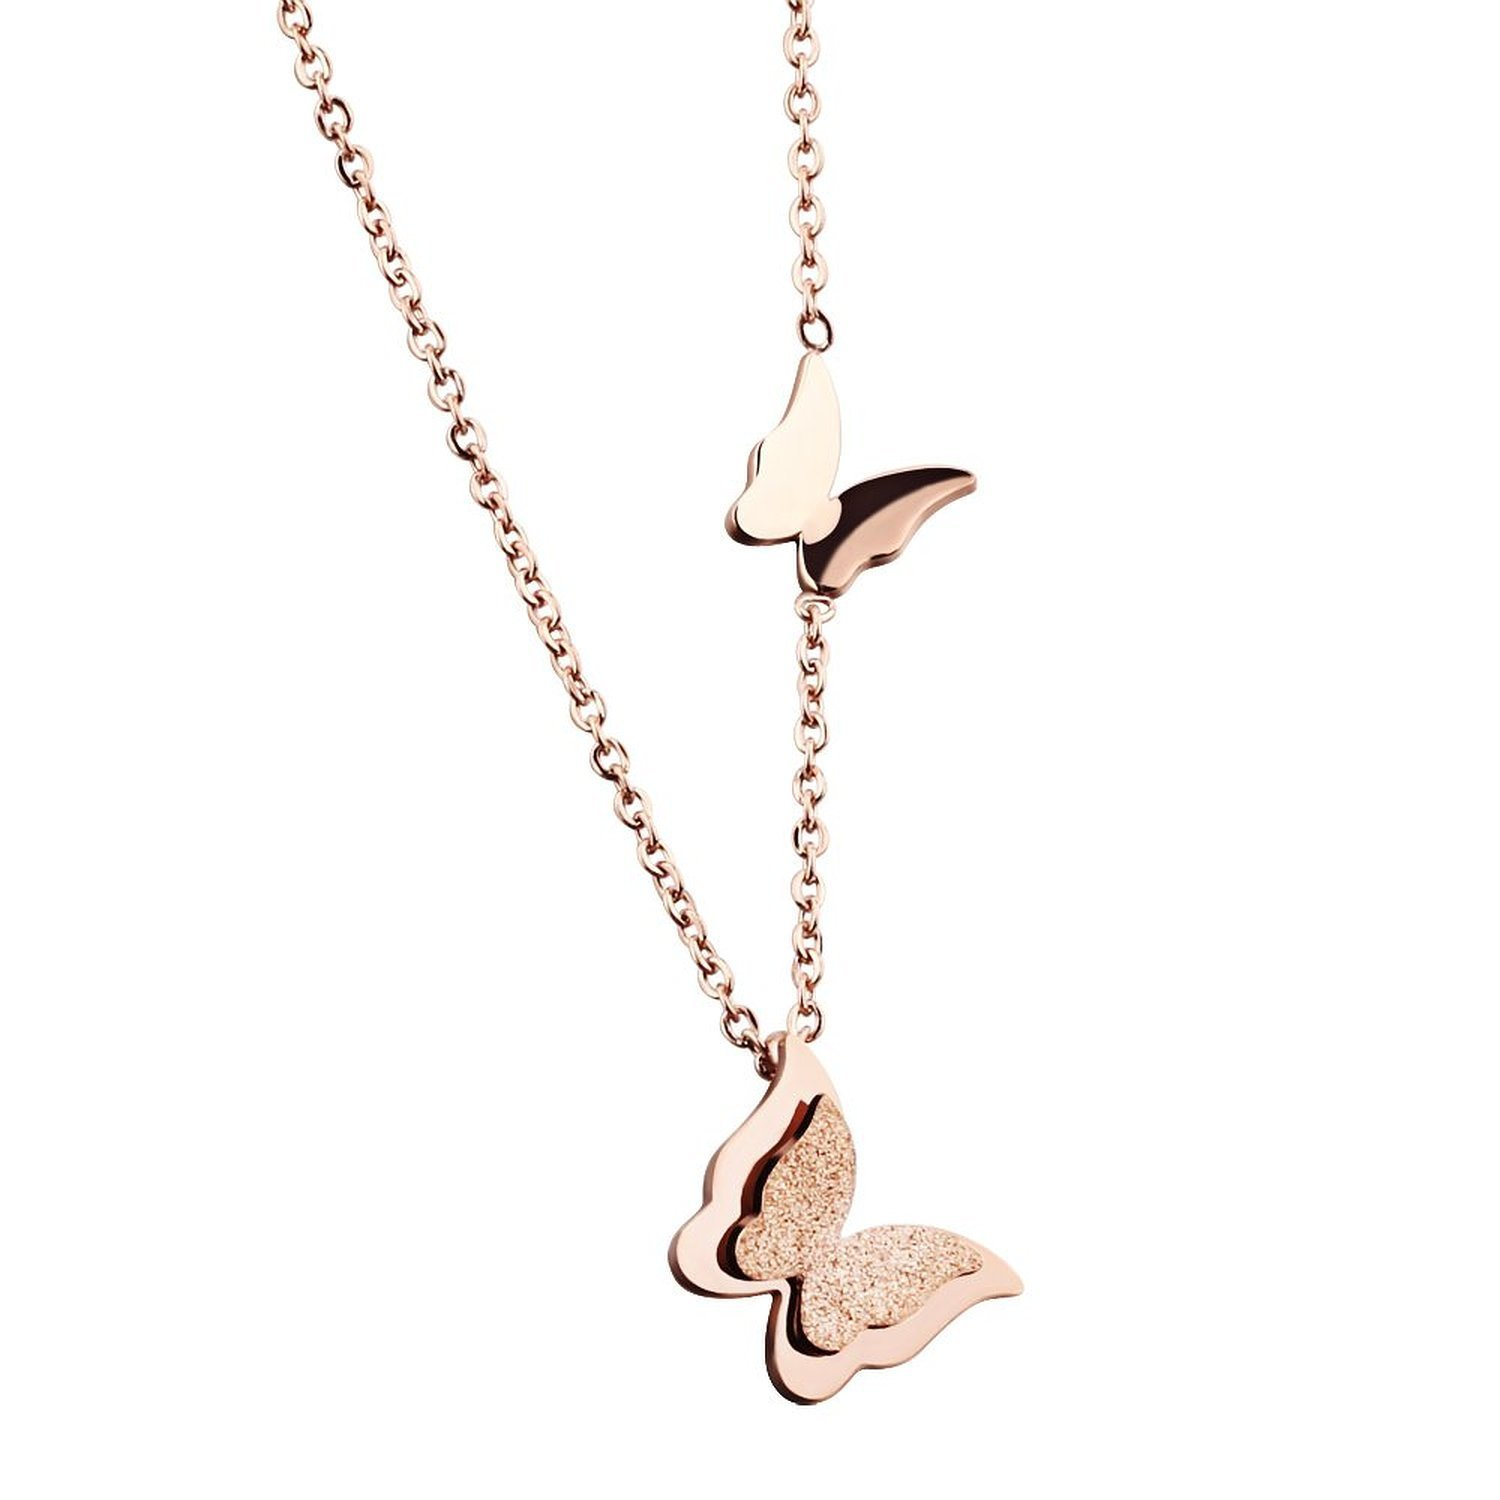 e9fee7911 WDSHOW Butterfly Pendant Necklace Rose Gold Filled Stainless Steel 16-18  inches: Amazon.ca: Jewelry